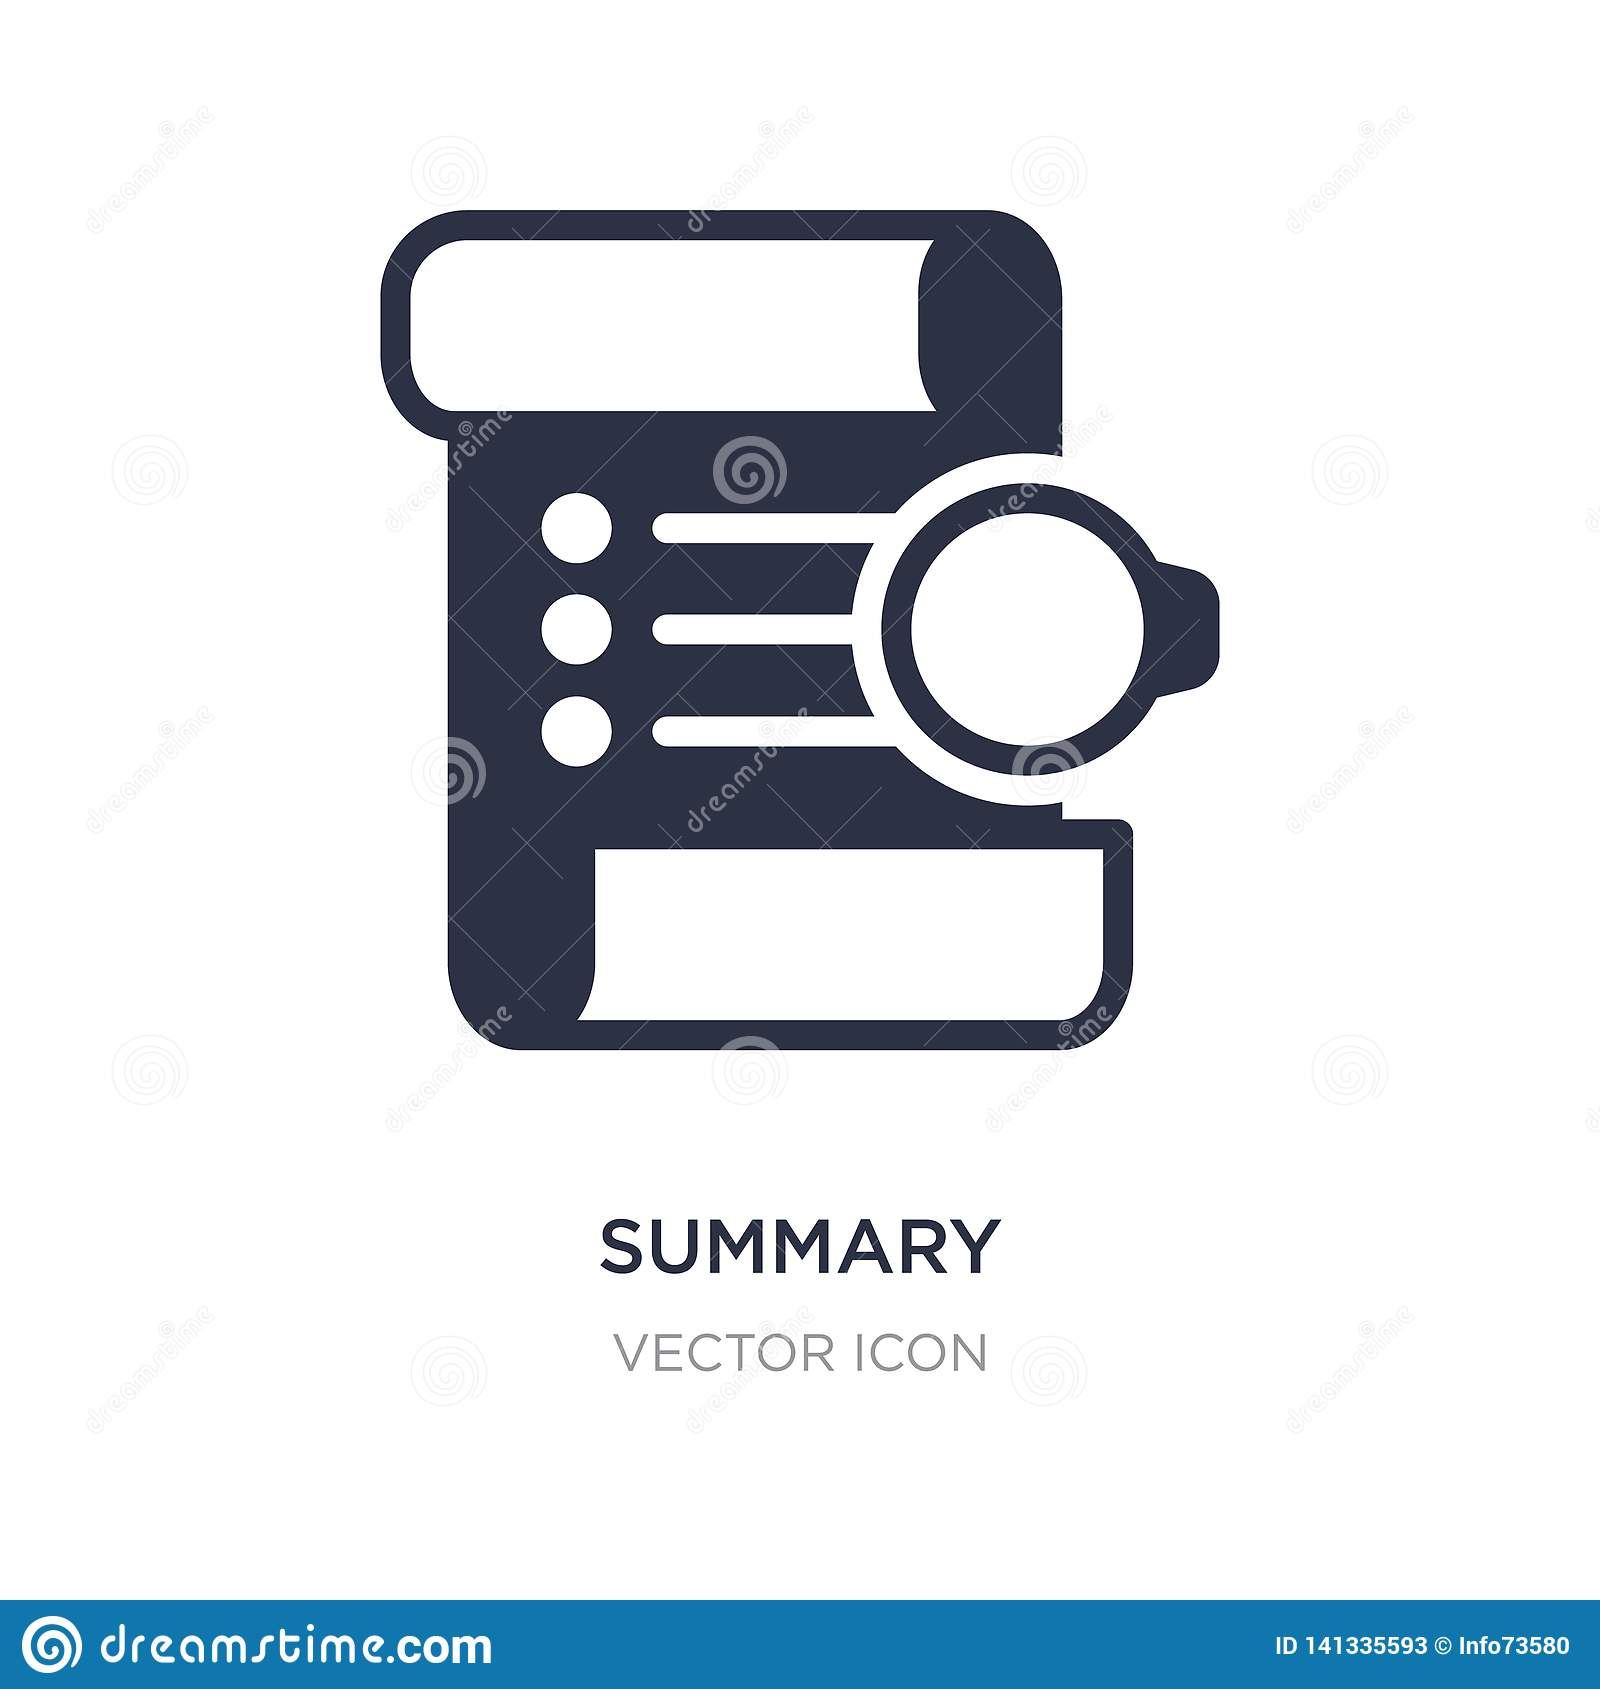 summary icon on white background. Simple element illustration from Technology concept